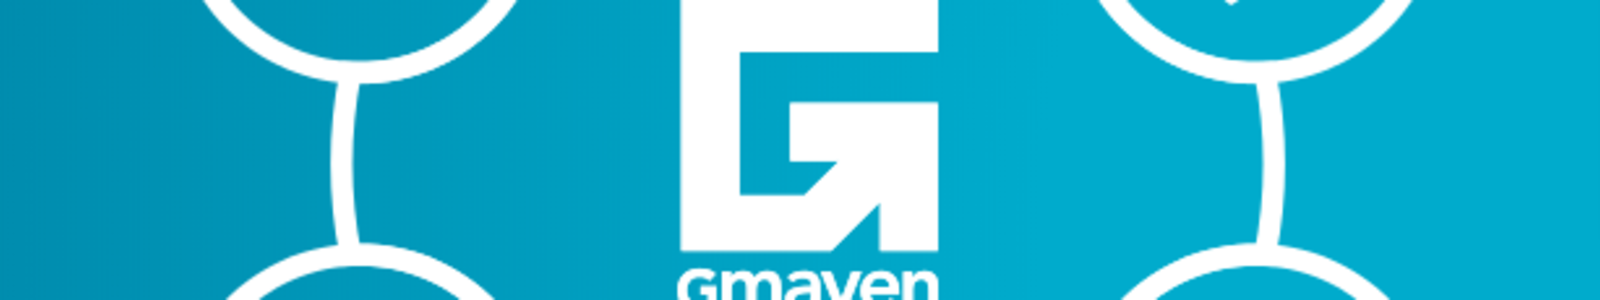 Automating a property brokerage with Gmaven